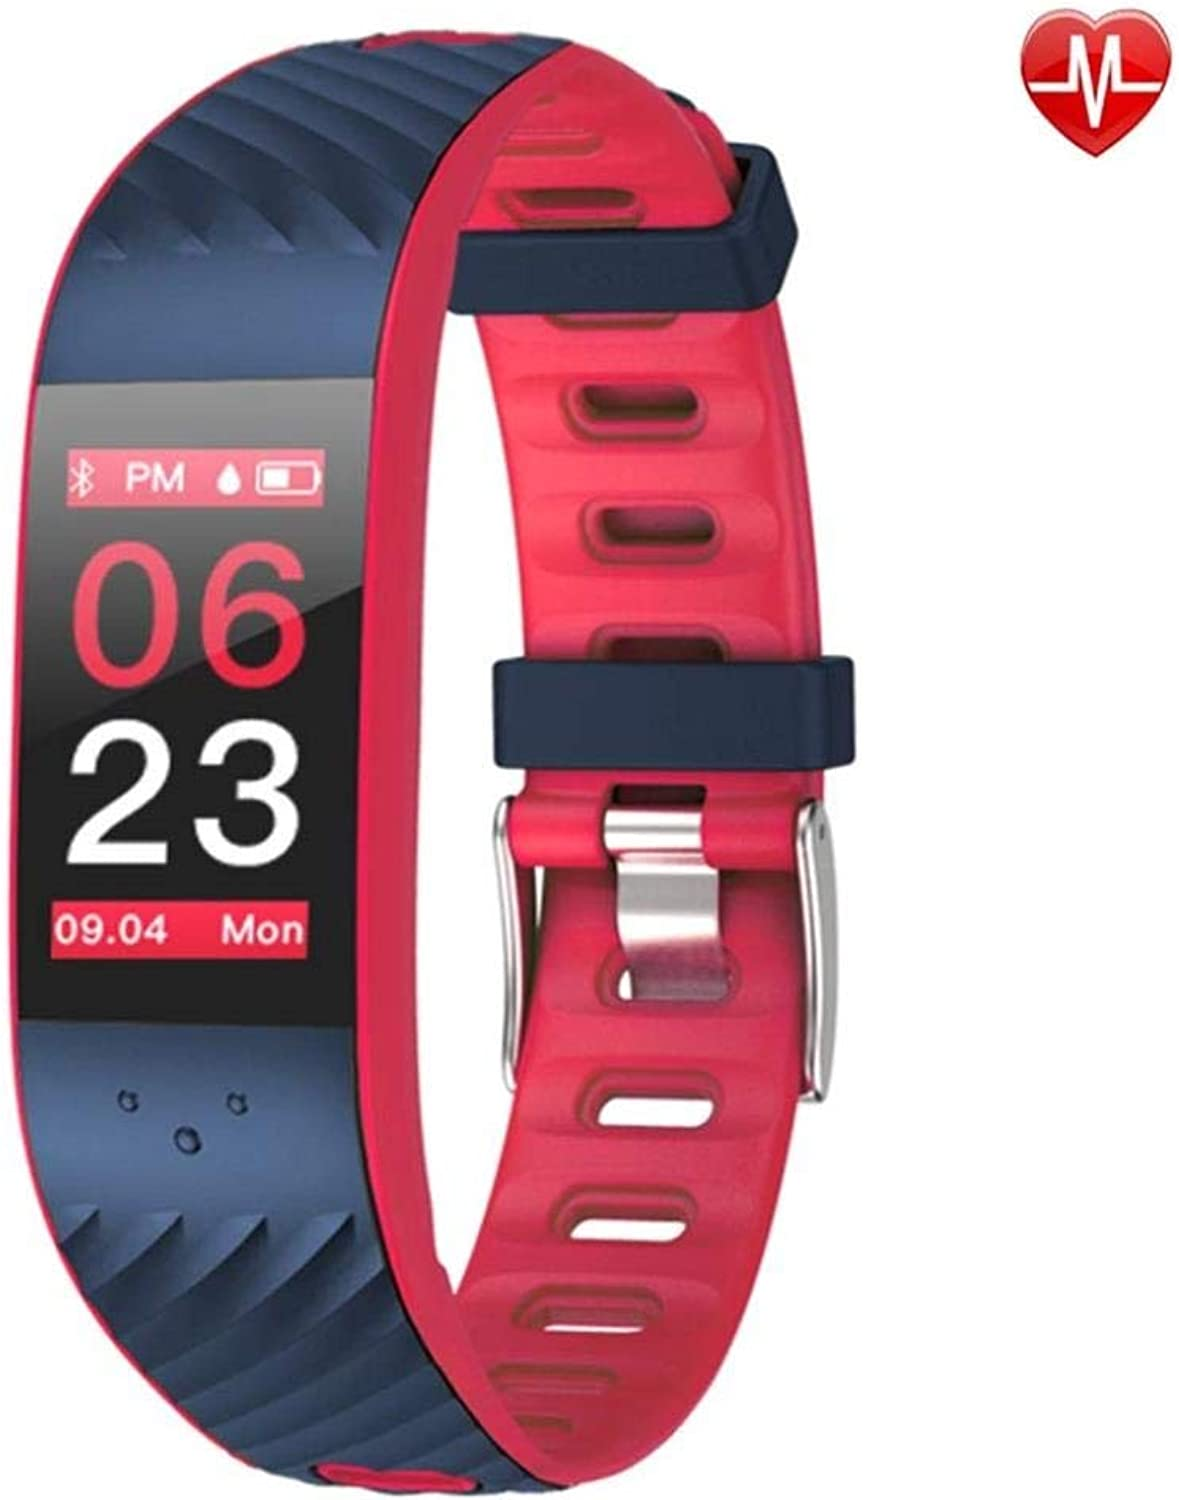 Fitness Tracker Activity Monitor Pedometer Heart Rate Blood Pressure Monitoring MultiSports Function blueeetooth Smart Bracelet